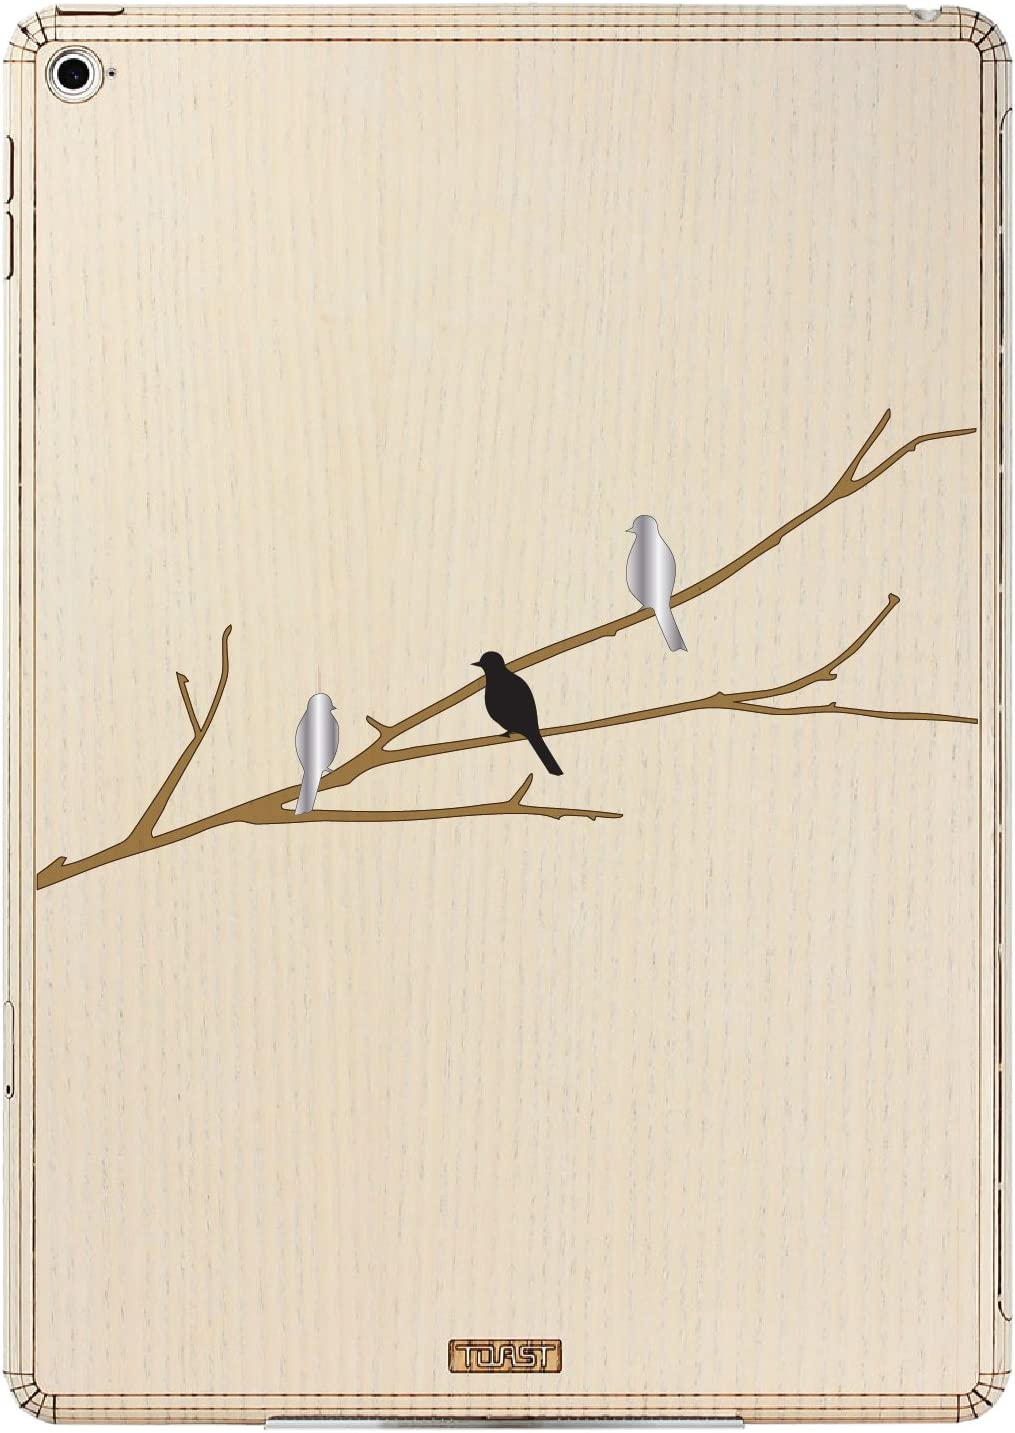 TOAST Bird on Branch Design Cover for the iPad Air 2, Ash (IPDA2-BOB-02)